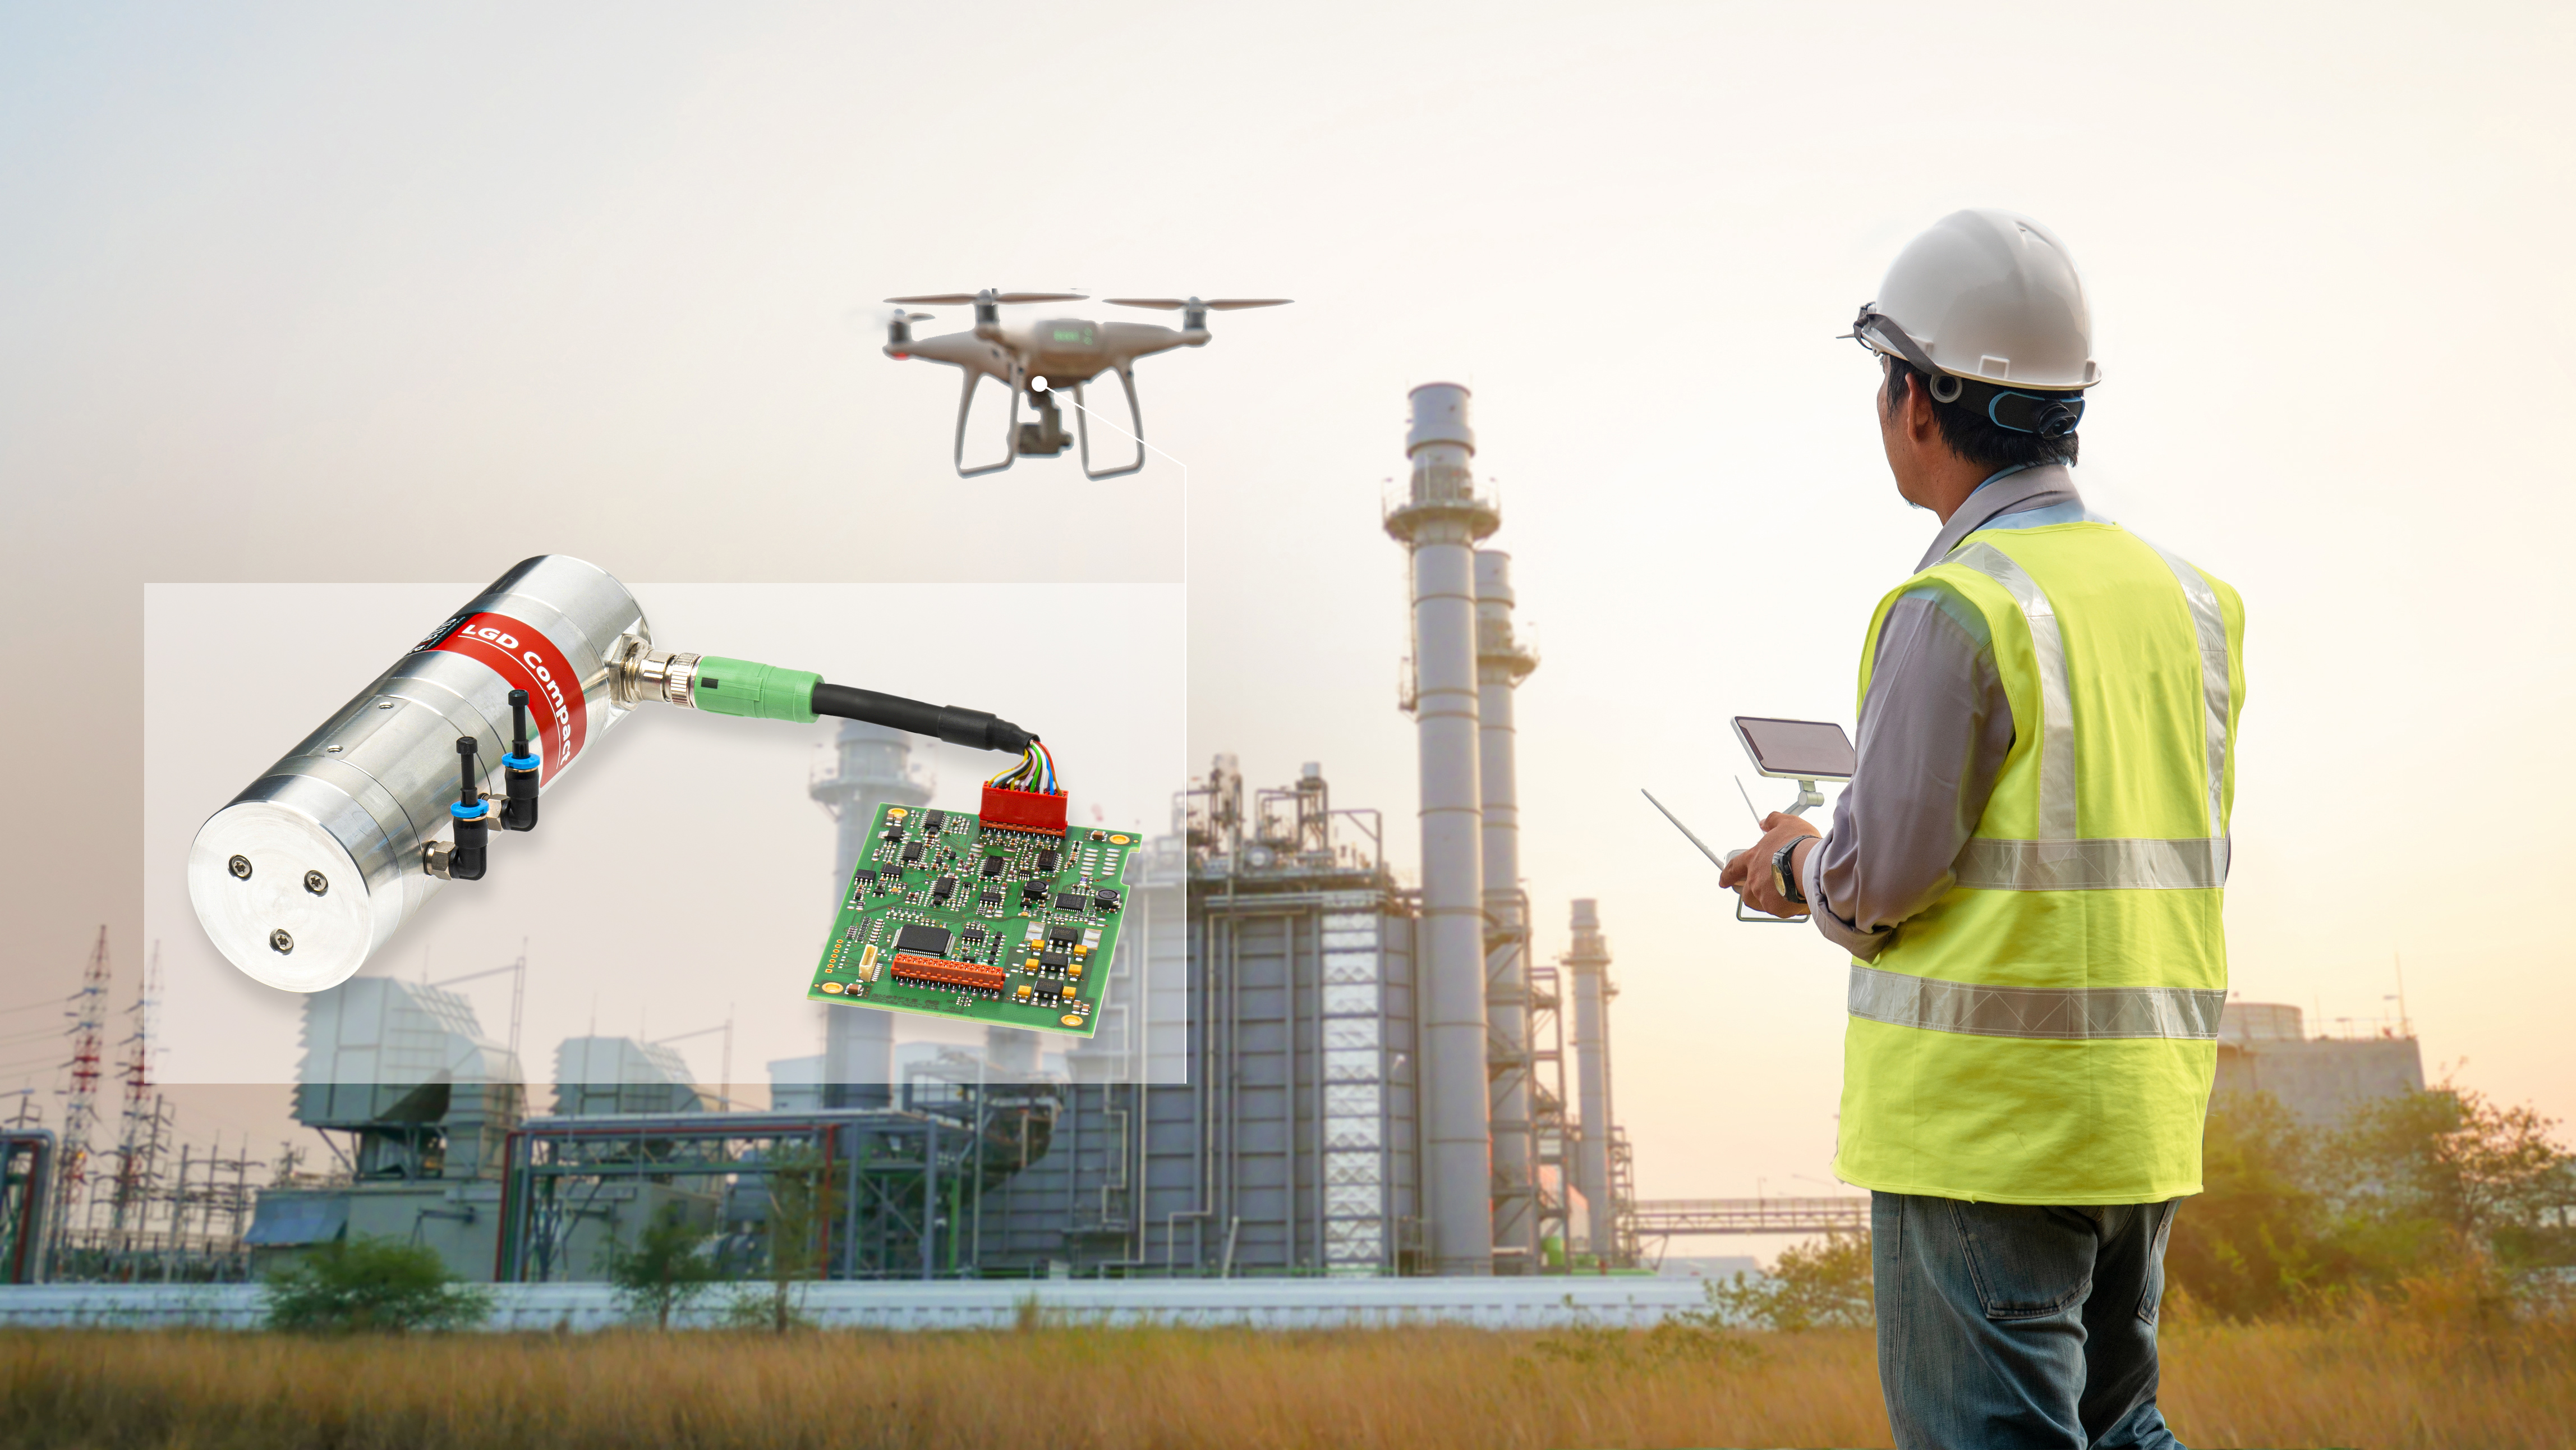 Drone with LGD Compact searching for gas leaks